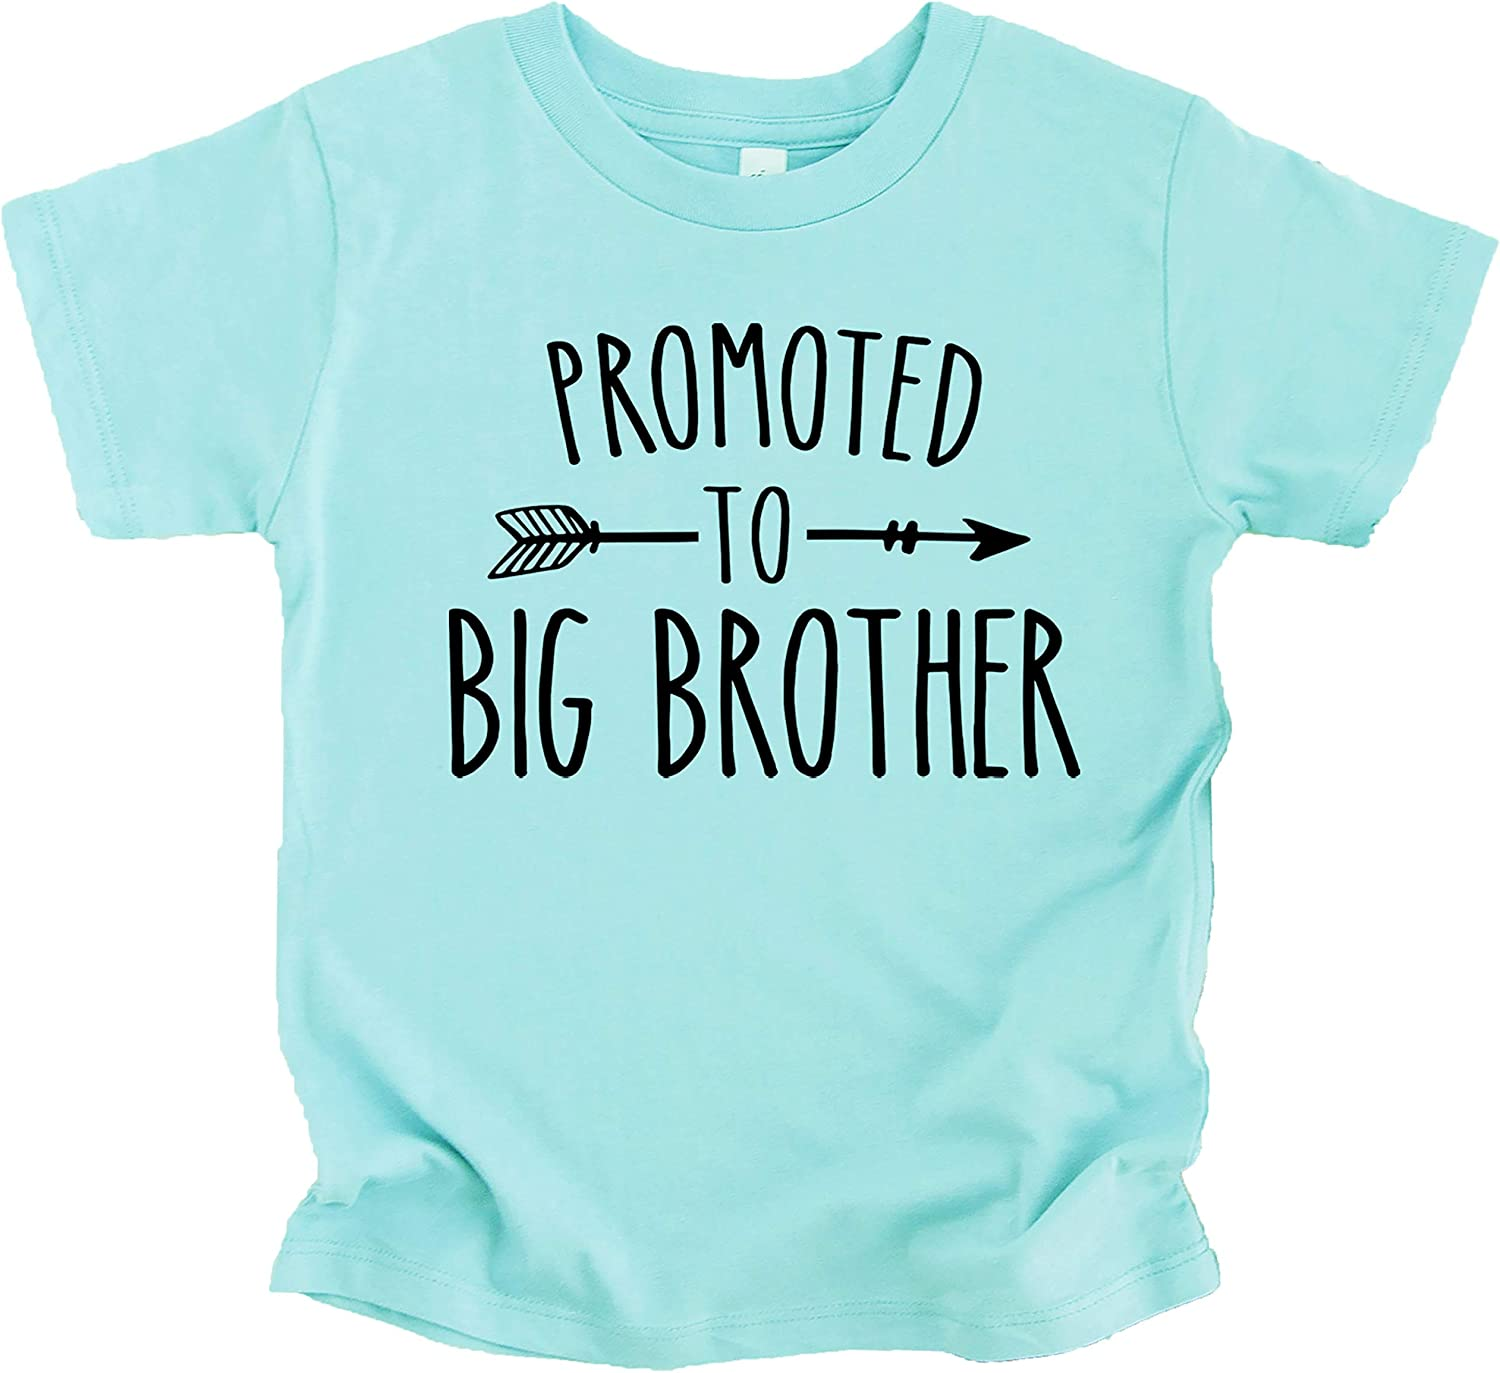 Promoted to Big Brother Arrow Sibling Reveal Announcement Shirt for Boys Big Brother Sibling Outfit